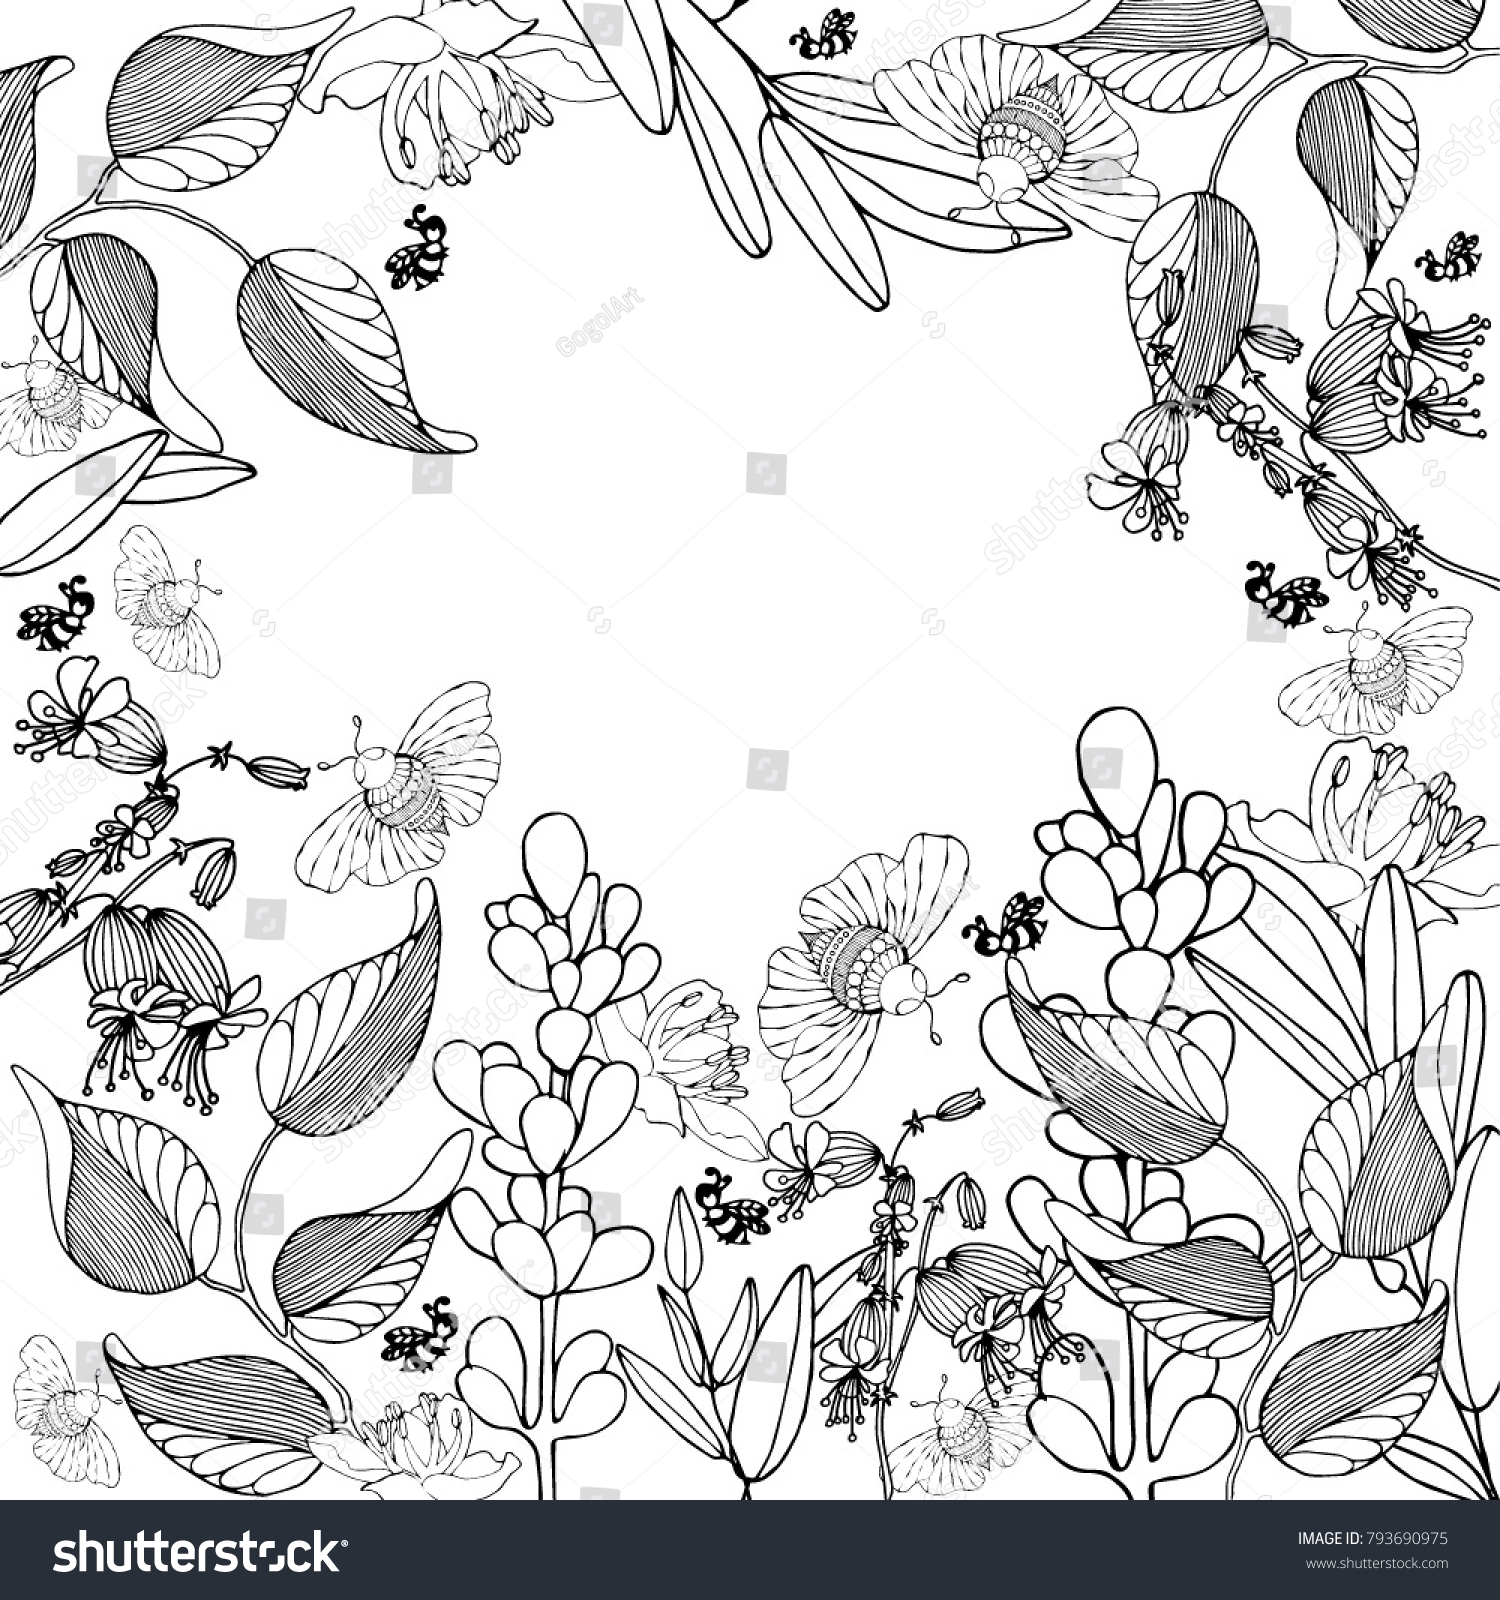 coloring page border at getcolorings com free printable colorings ... | 1600x1500